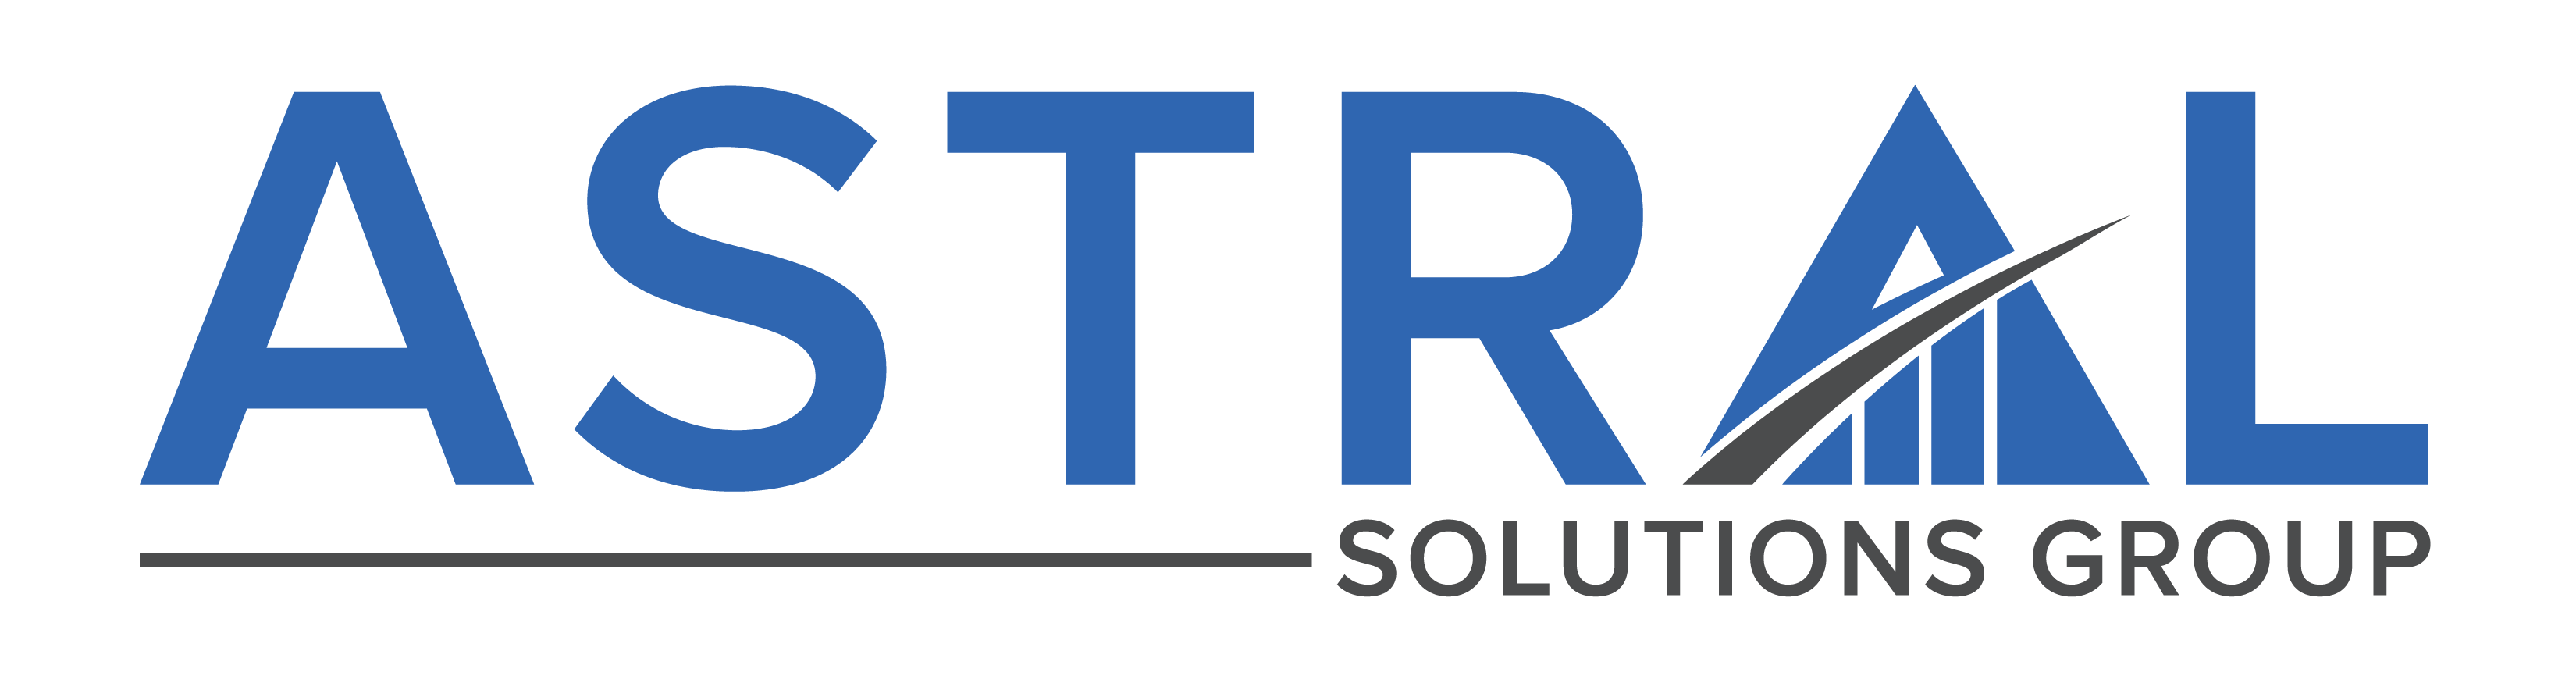 Astral Solutions Group